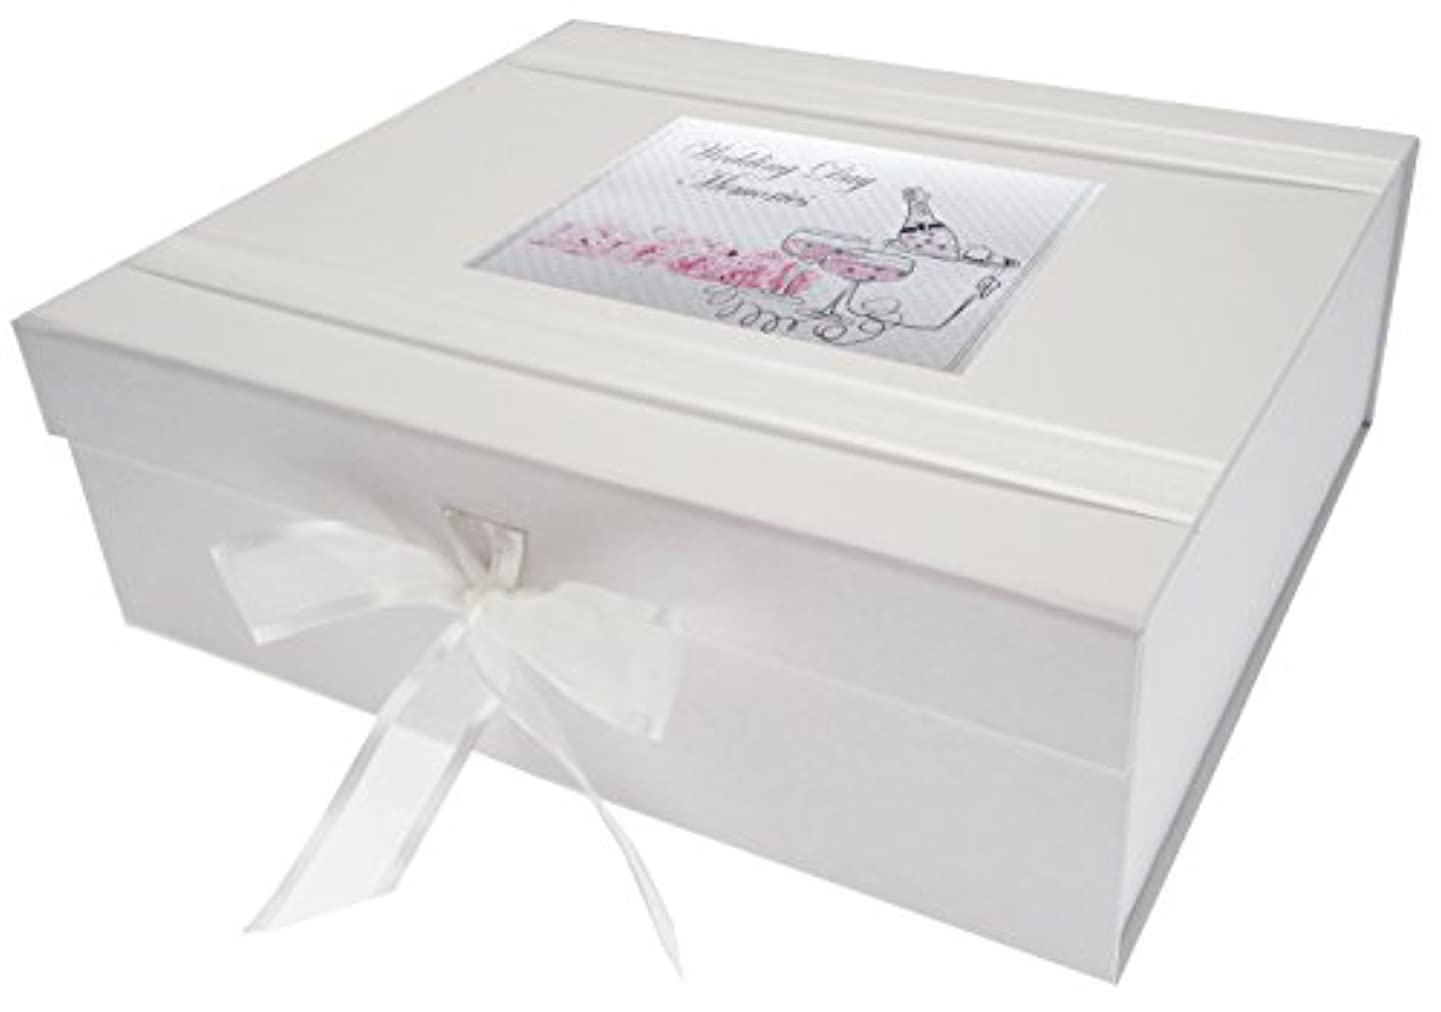 WHITE COTTON CARDS Wedding Day Memories, Large Keepsake Box, Champagne and Flowers. White, 27.2 x 32 x 11 cm